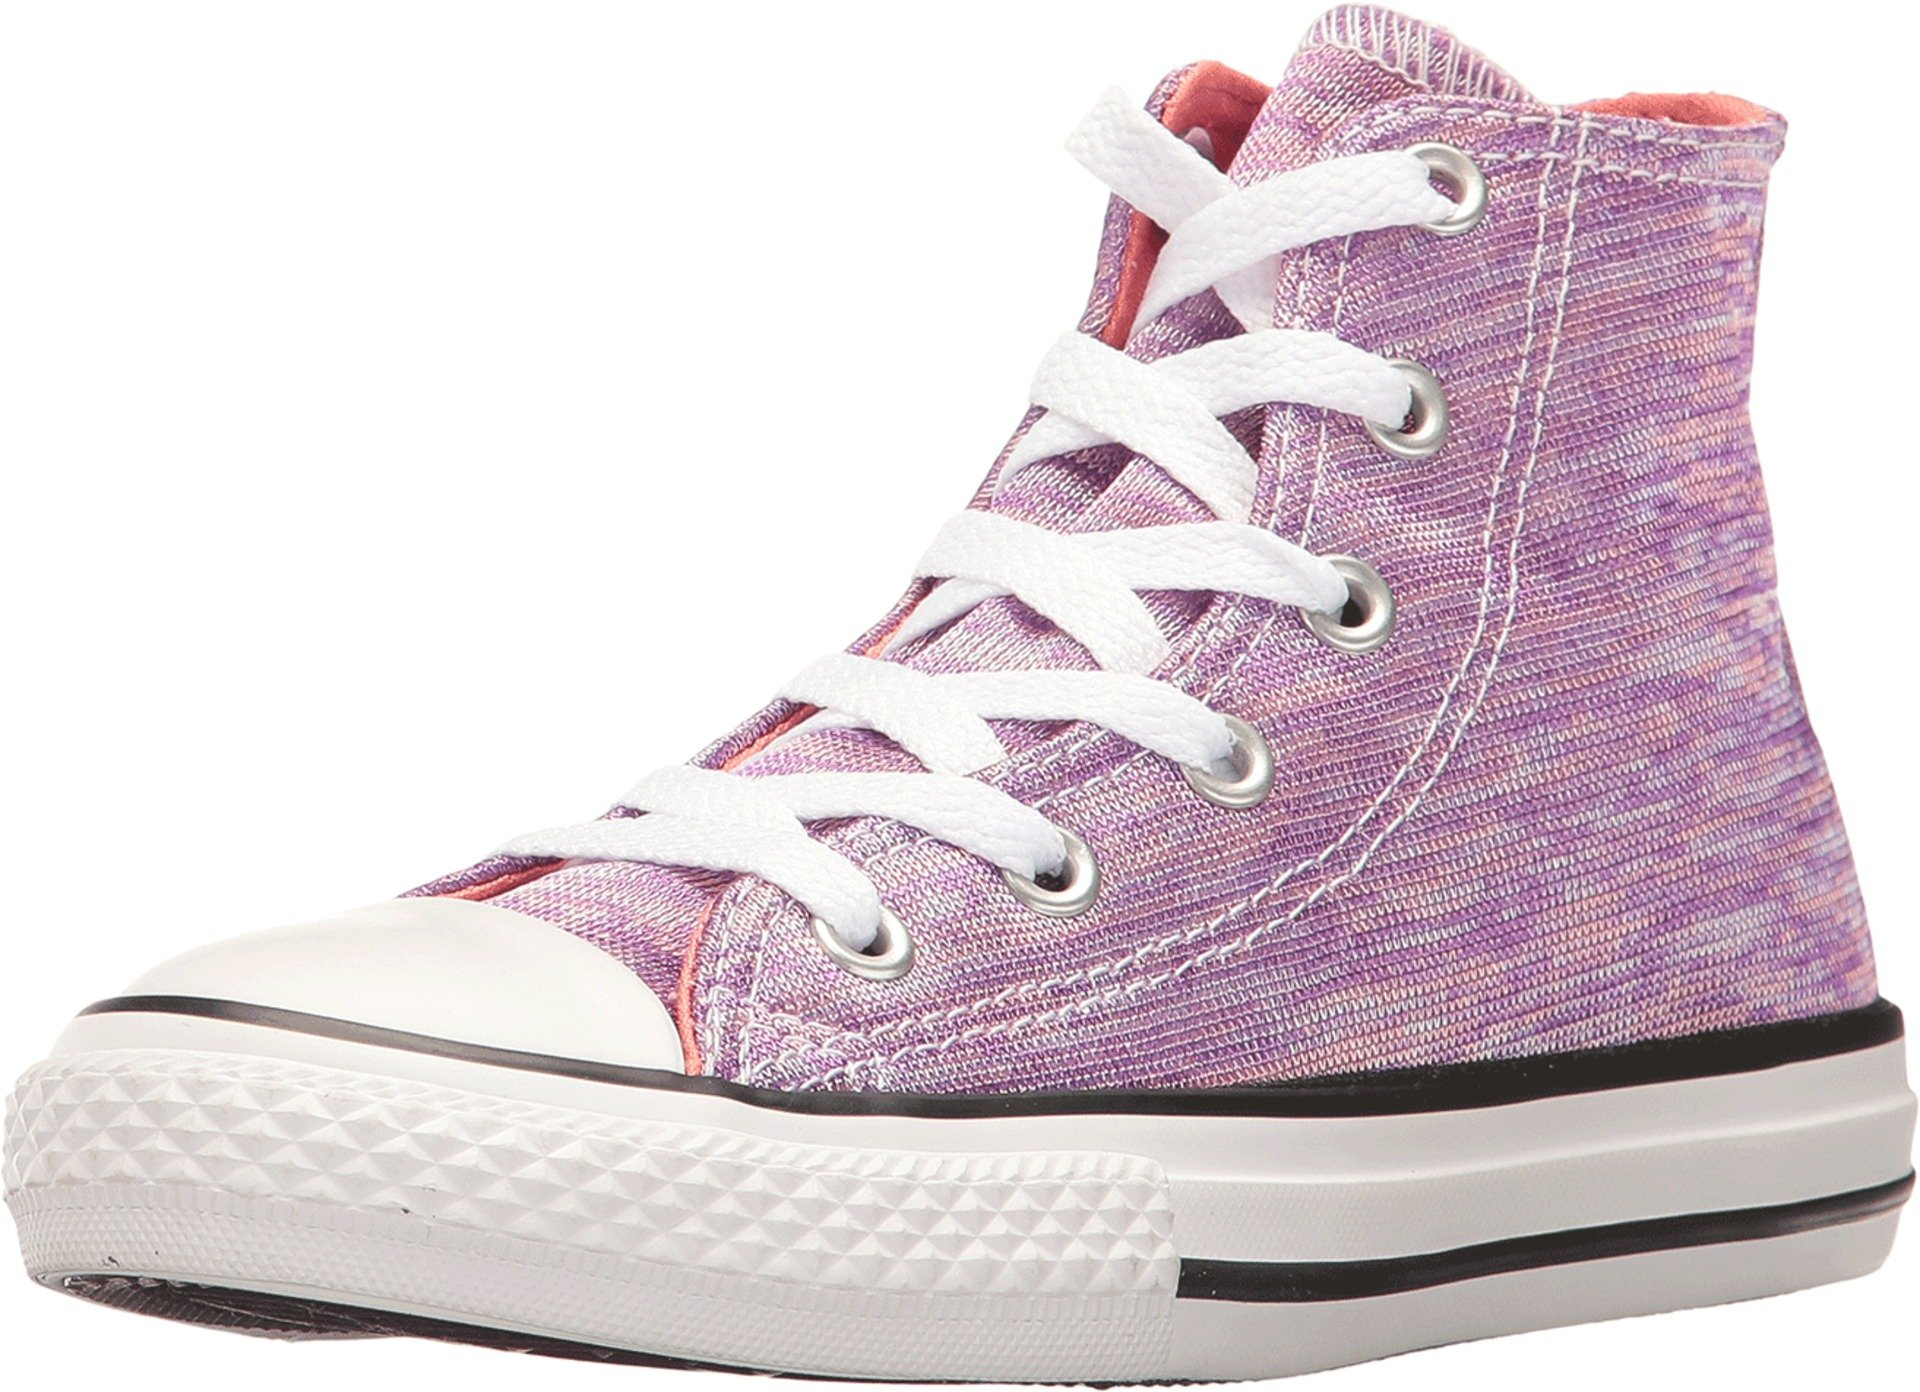 9056be515d8 Galleon - Converse Chuck Taylor All Star High Girls Fashion-Sneakers  358641F 13 - Bright Violet Sunblush White